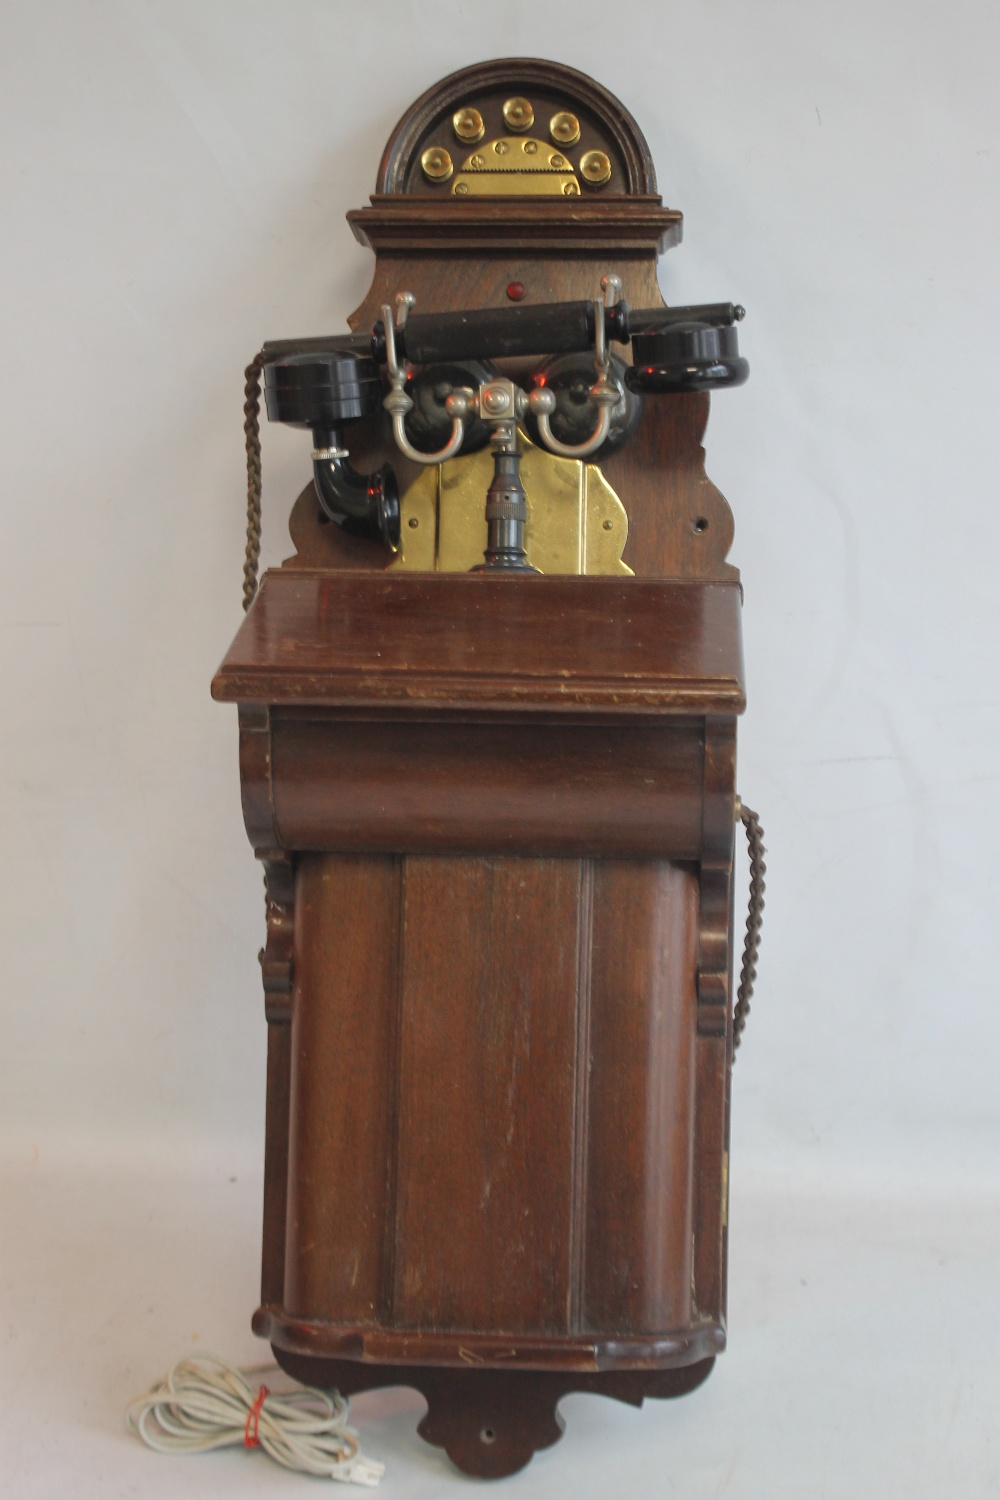 L.M ERICSSON AND CO WALL MOUNTED TELEPHONE from the turn of the century